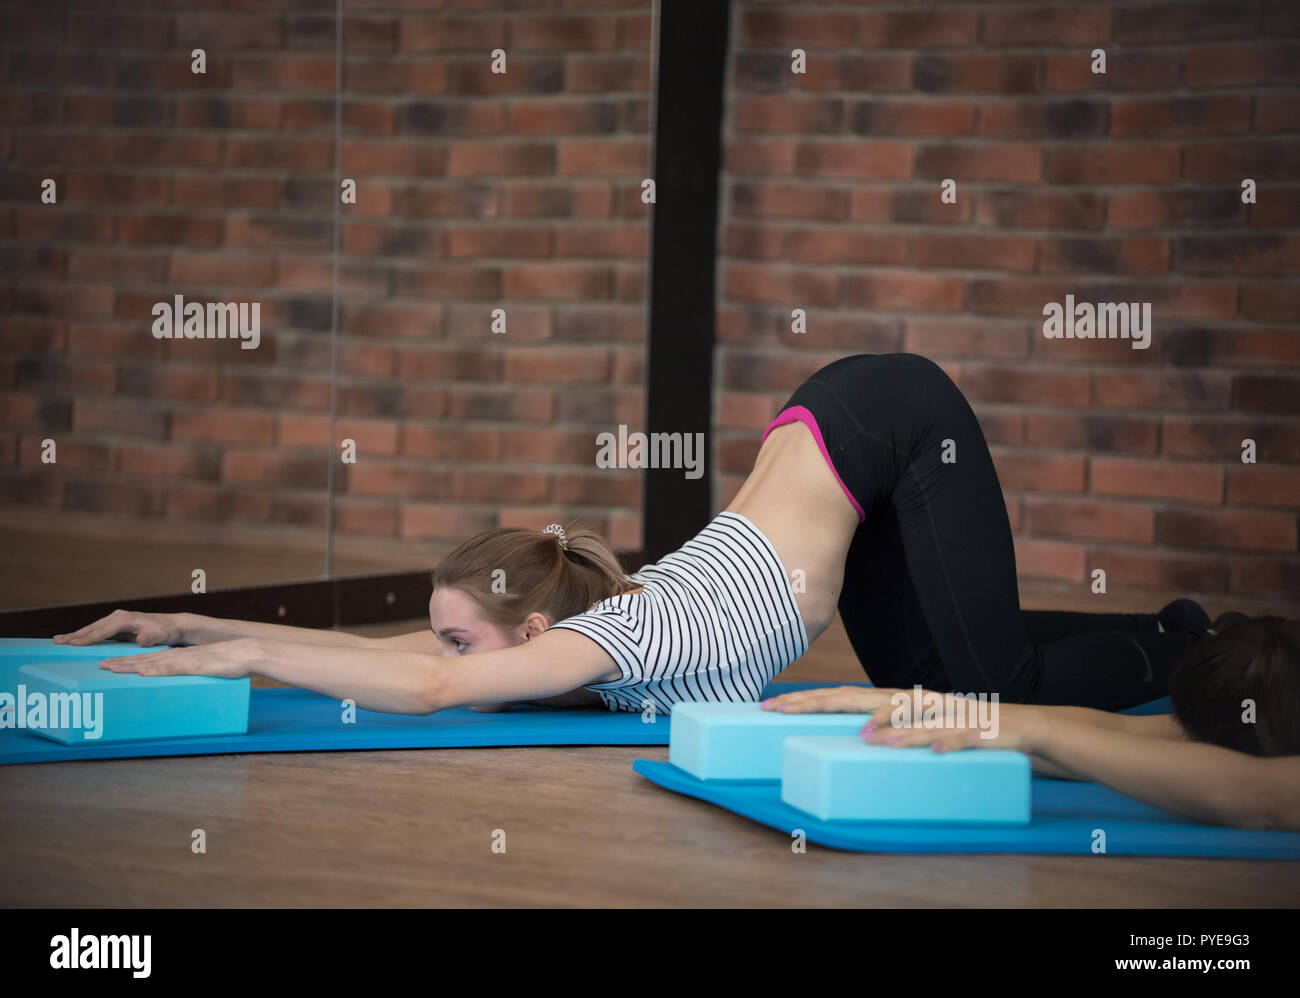 Young Pretty Woman con leggings realizando una baja backbend mostrando flexibilidad Imagen De Stock